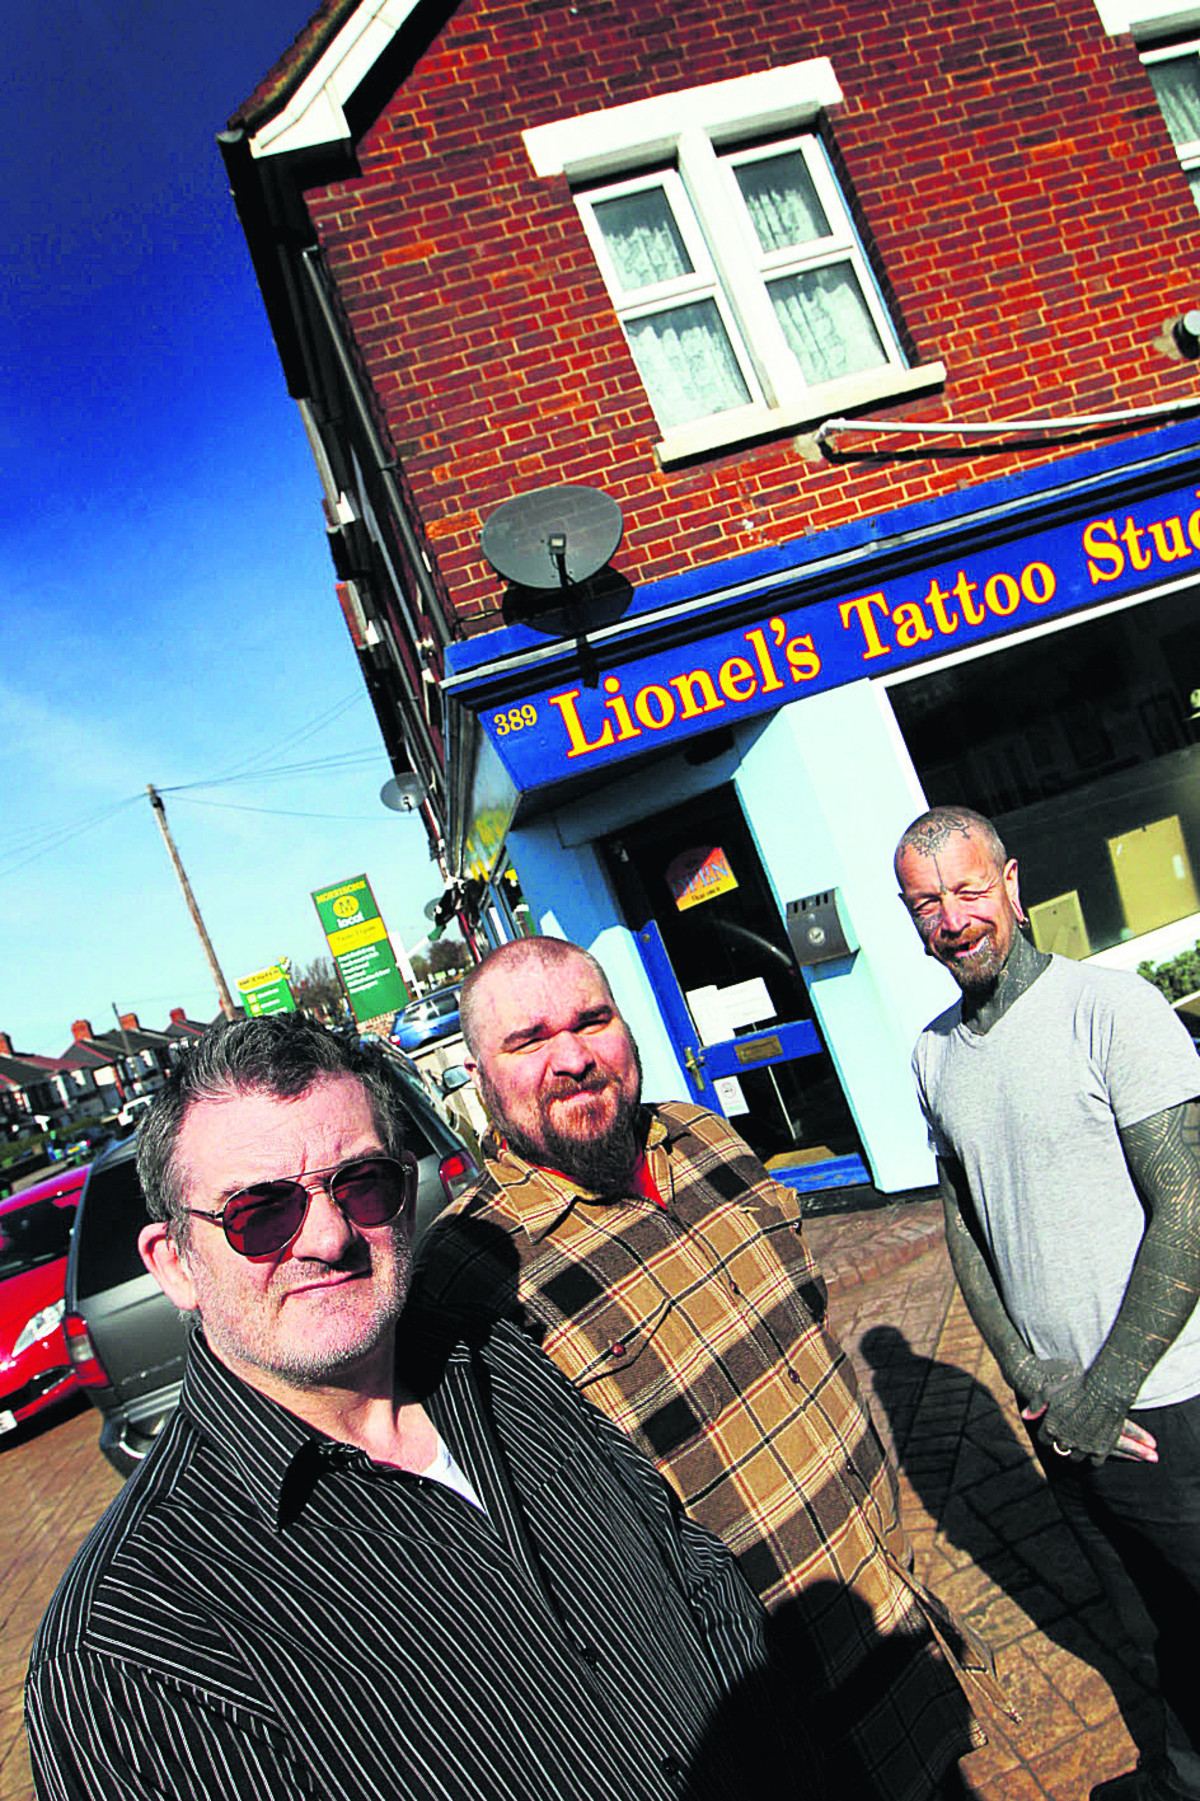 From left, Lionel Titchener, Barny Titchener and Curly Moore at Lionel's Tattoo Studio. Picture: OX66161 Ed Nix